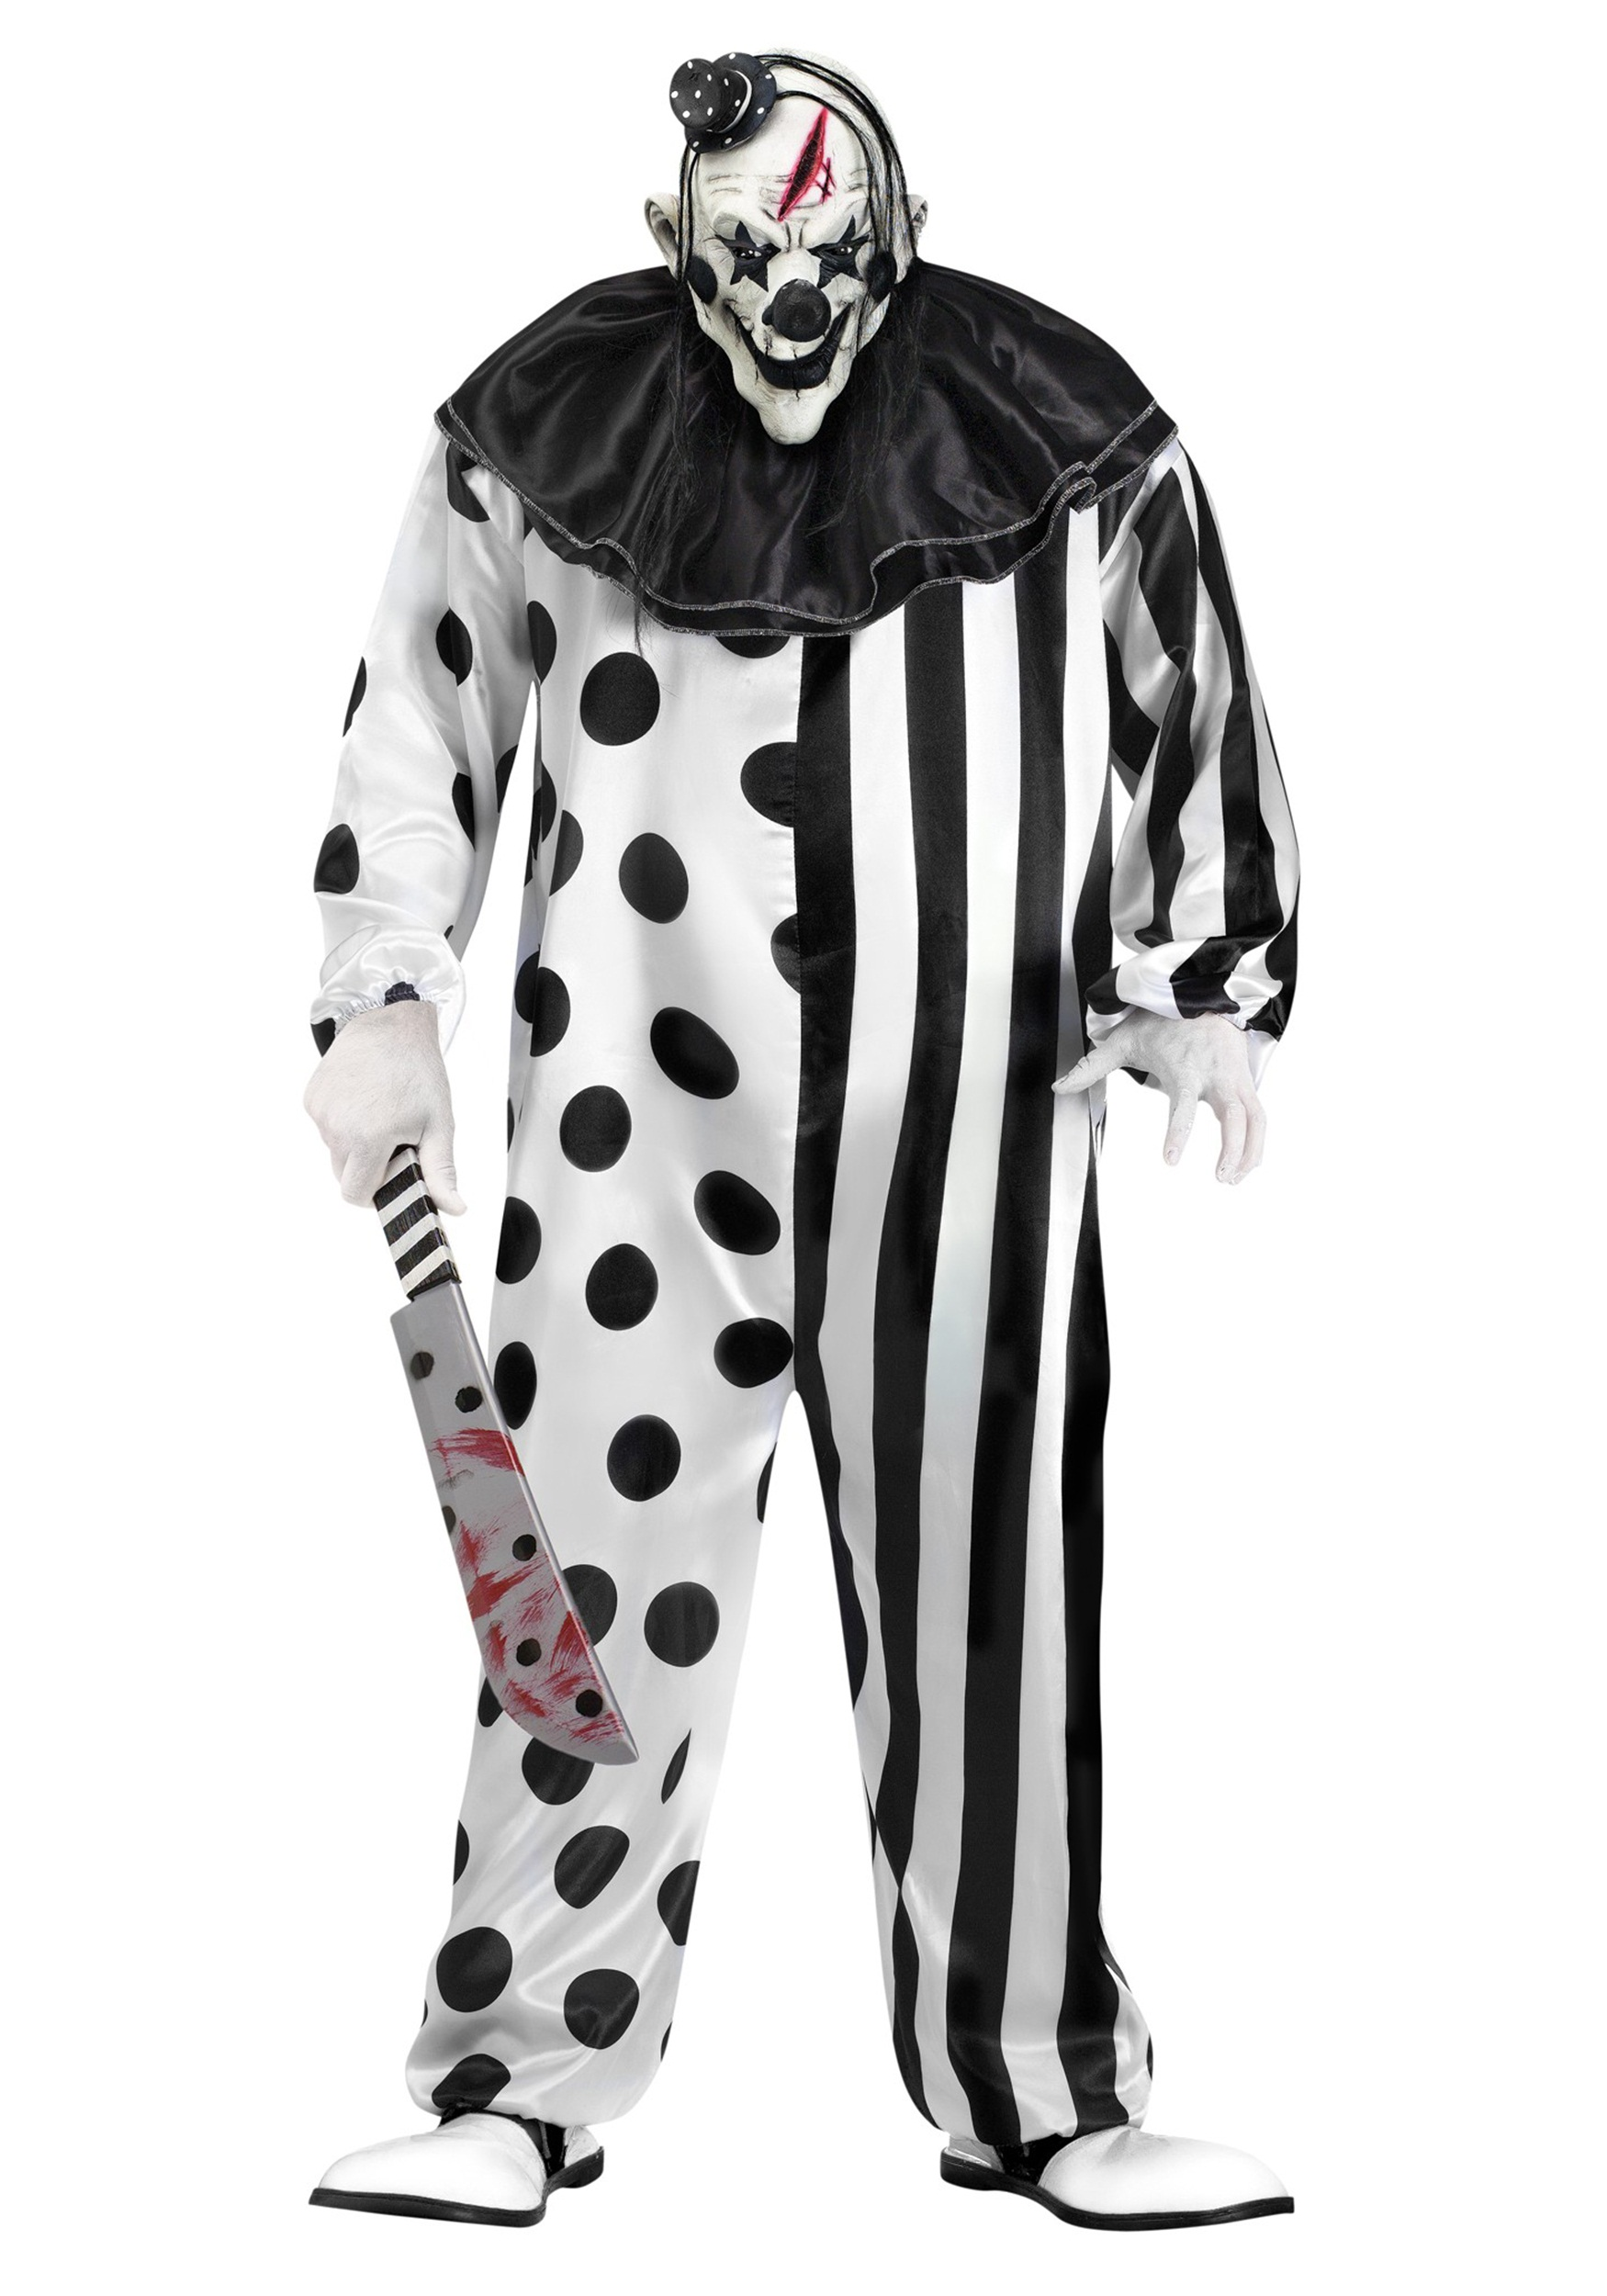 Killer Clown Halloween Costumes For Girls.Killer Clown Plus Size Costume